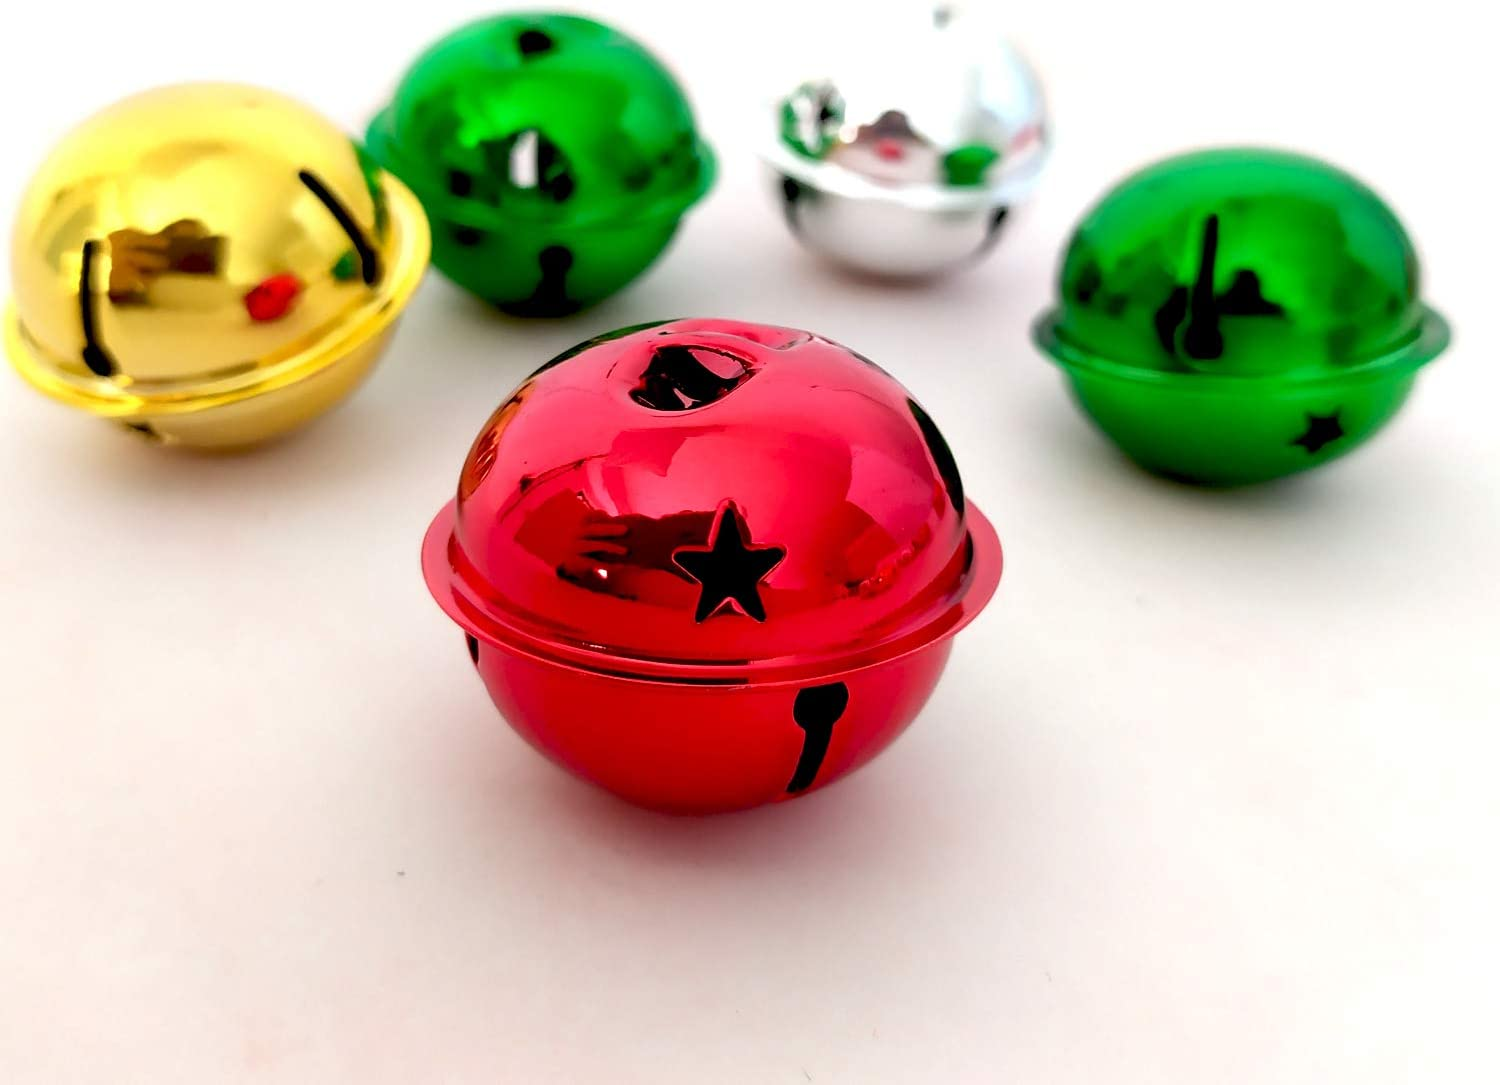 Aflyu 16 Pieces Jingle Bells Christmas Star Bells Craft Bells for Christmas Party 1.57 Inch red, Green, Gold and Silver